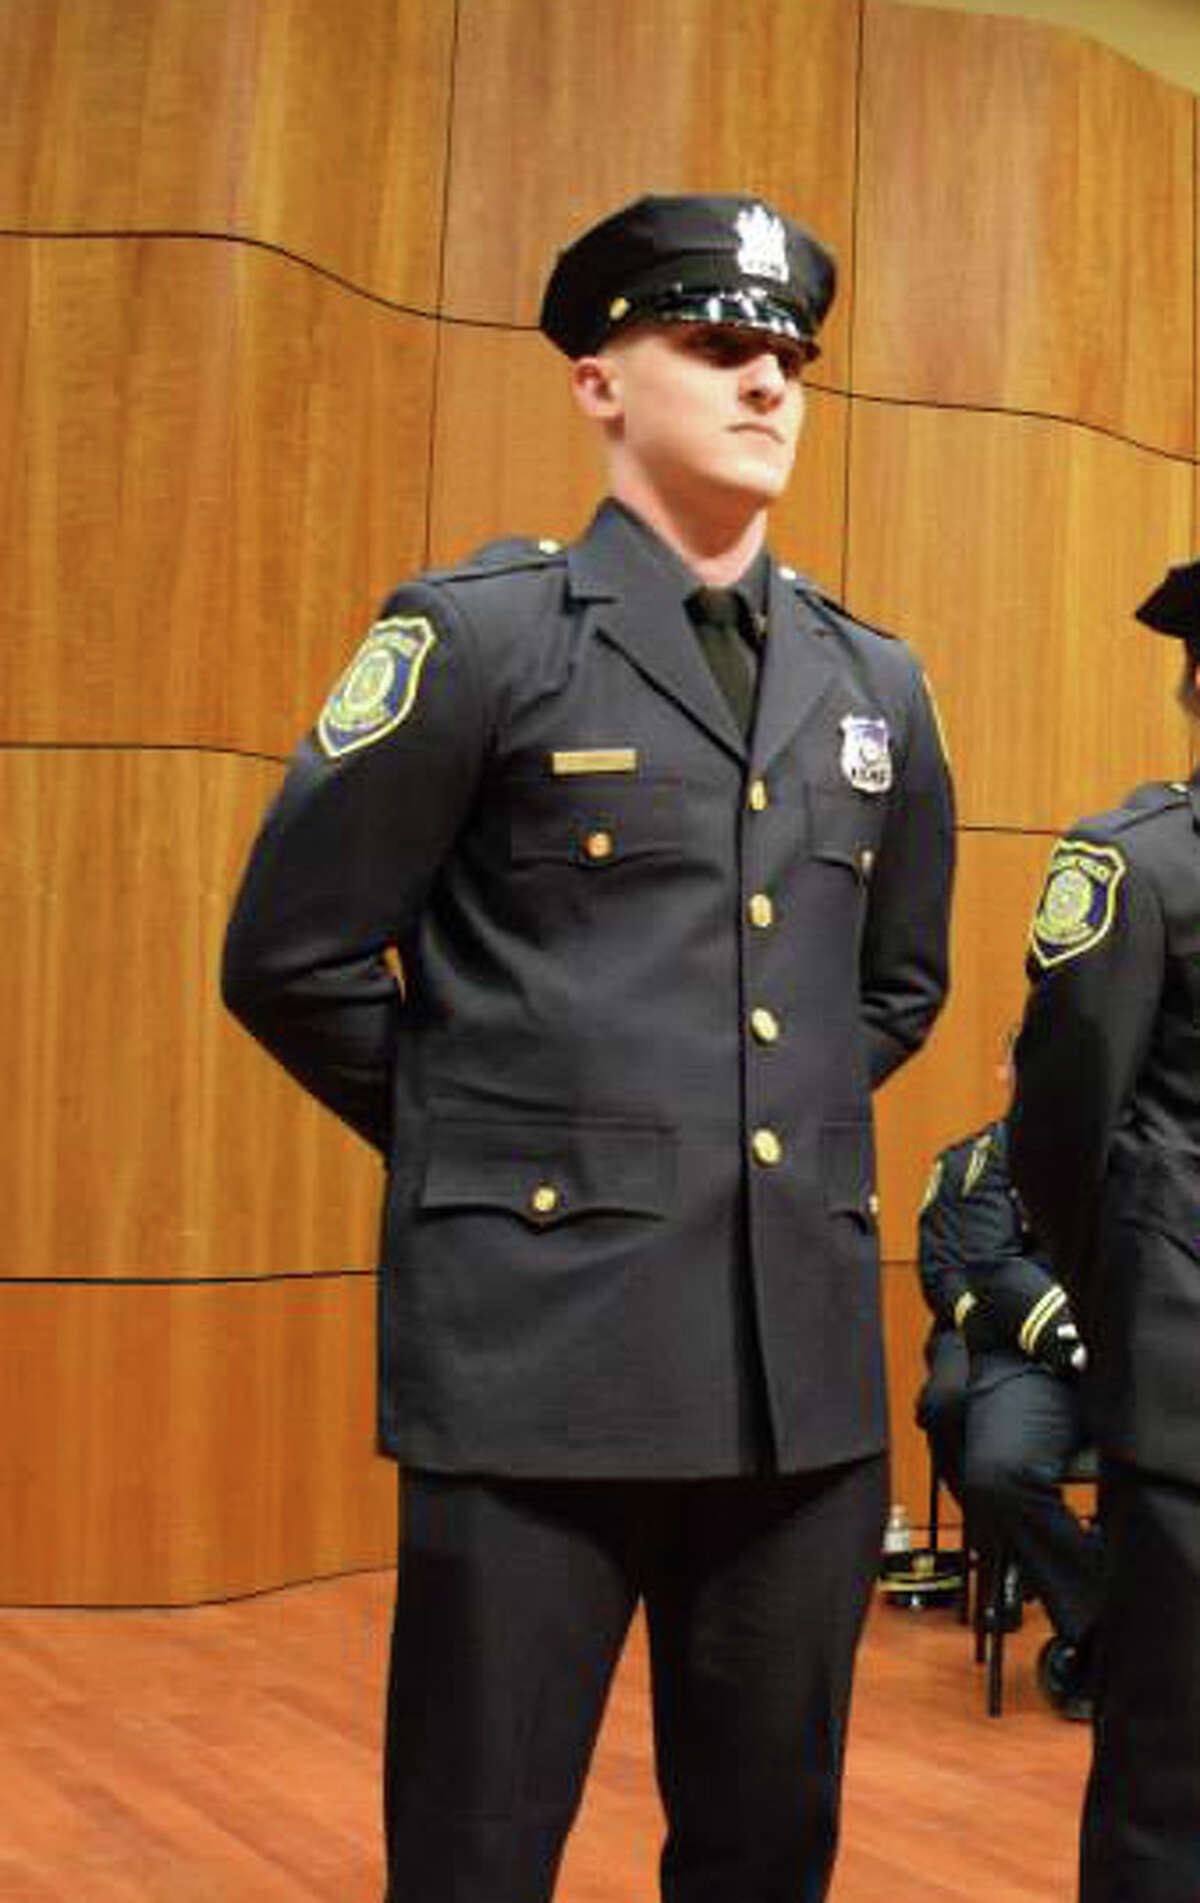 Albany police Officer Christopher KItto was